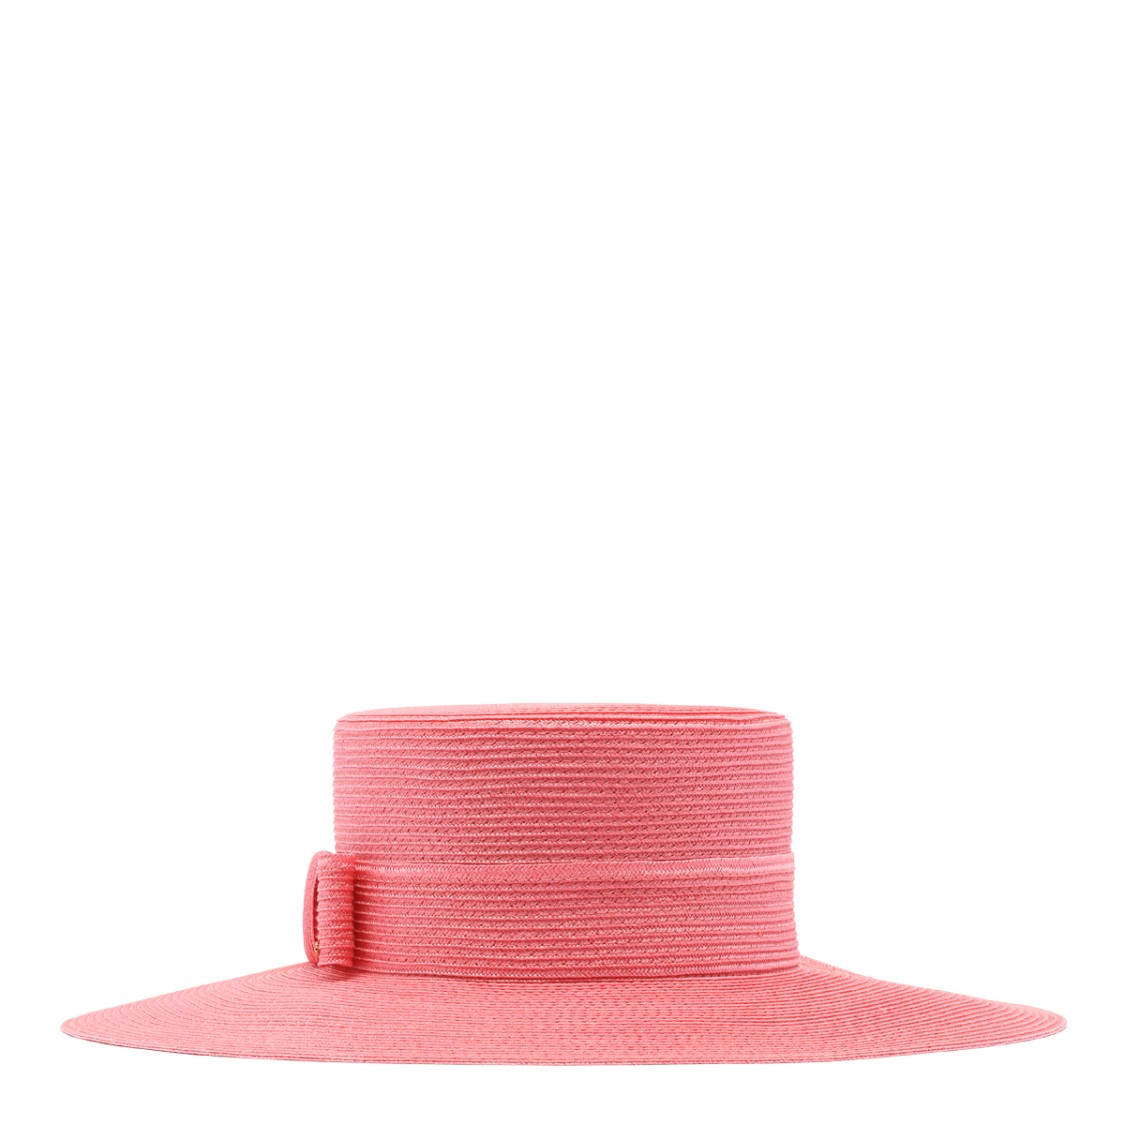 Gucci Pink Woven Straw Effect Hat